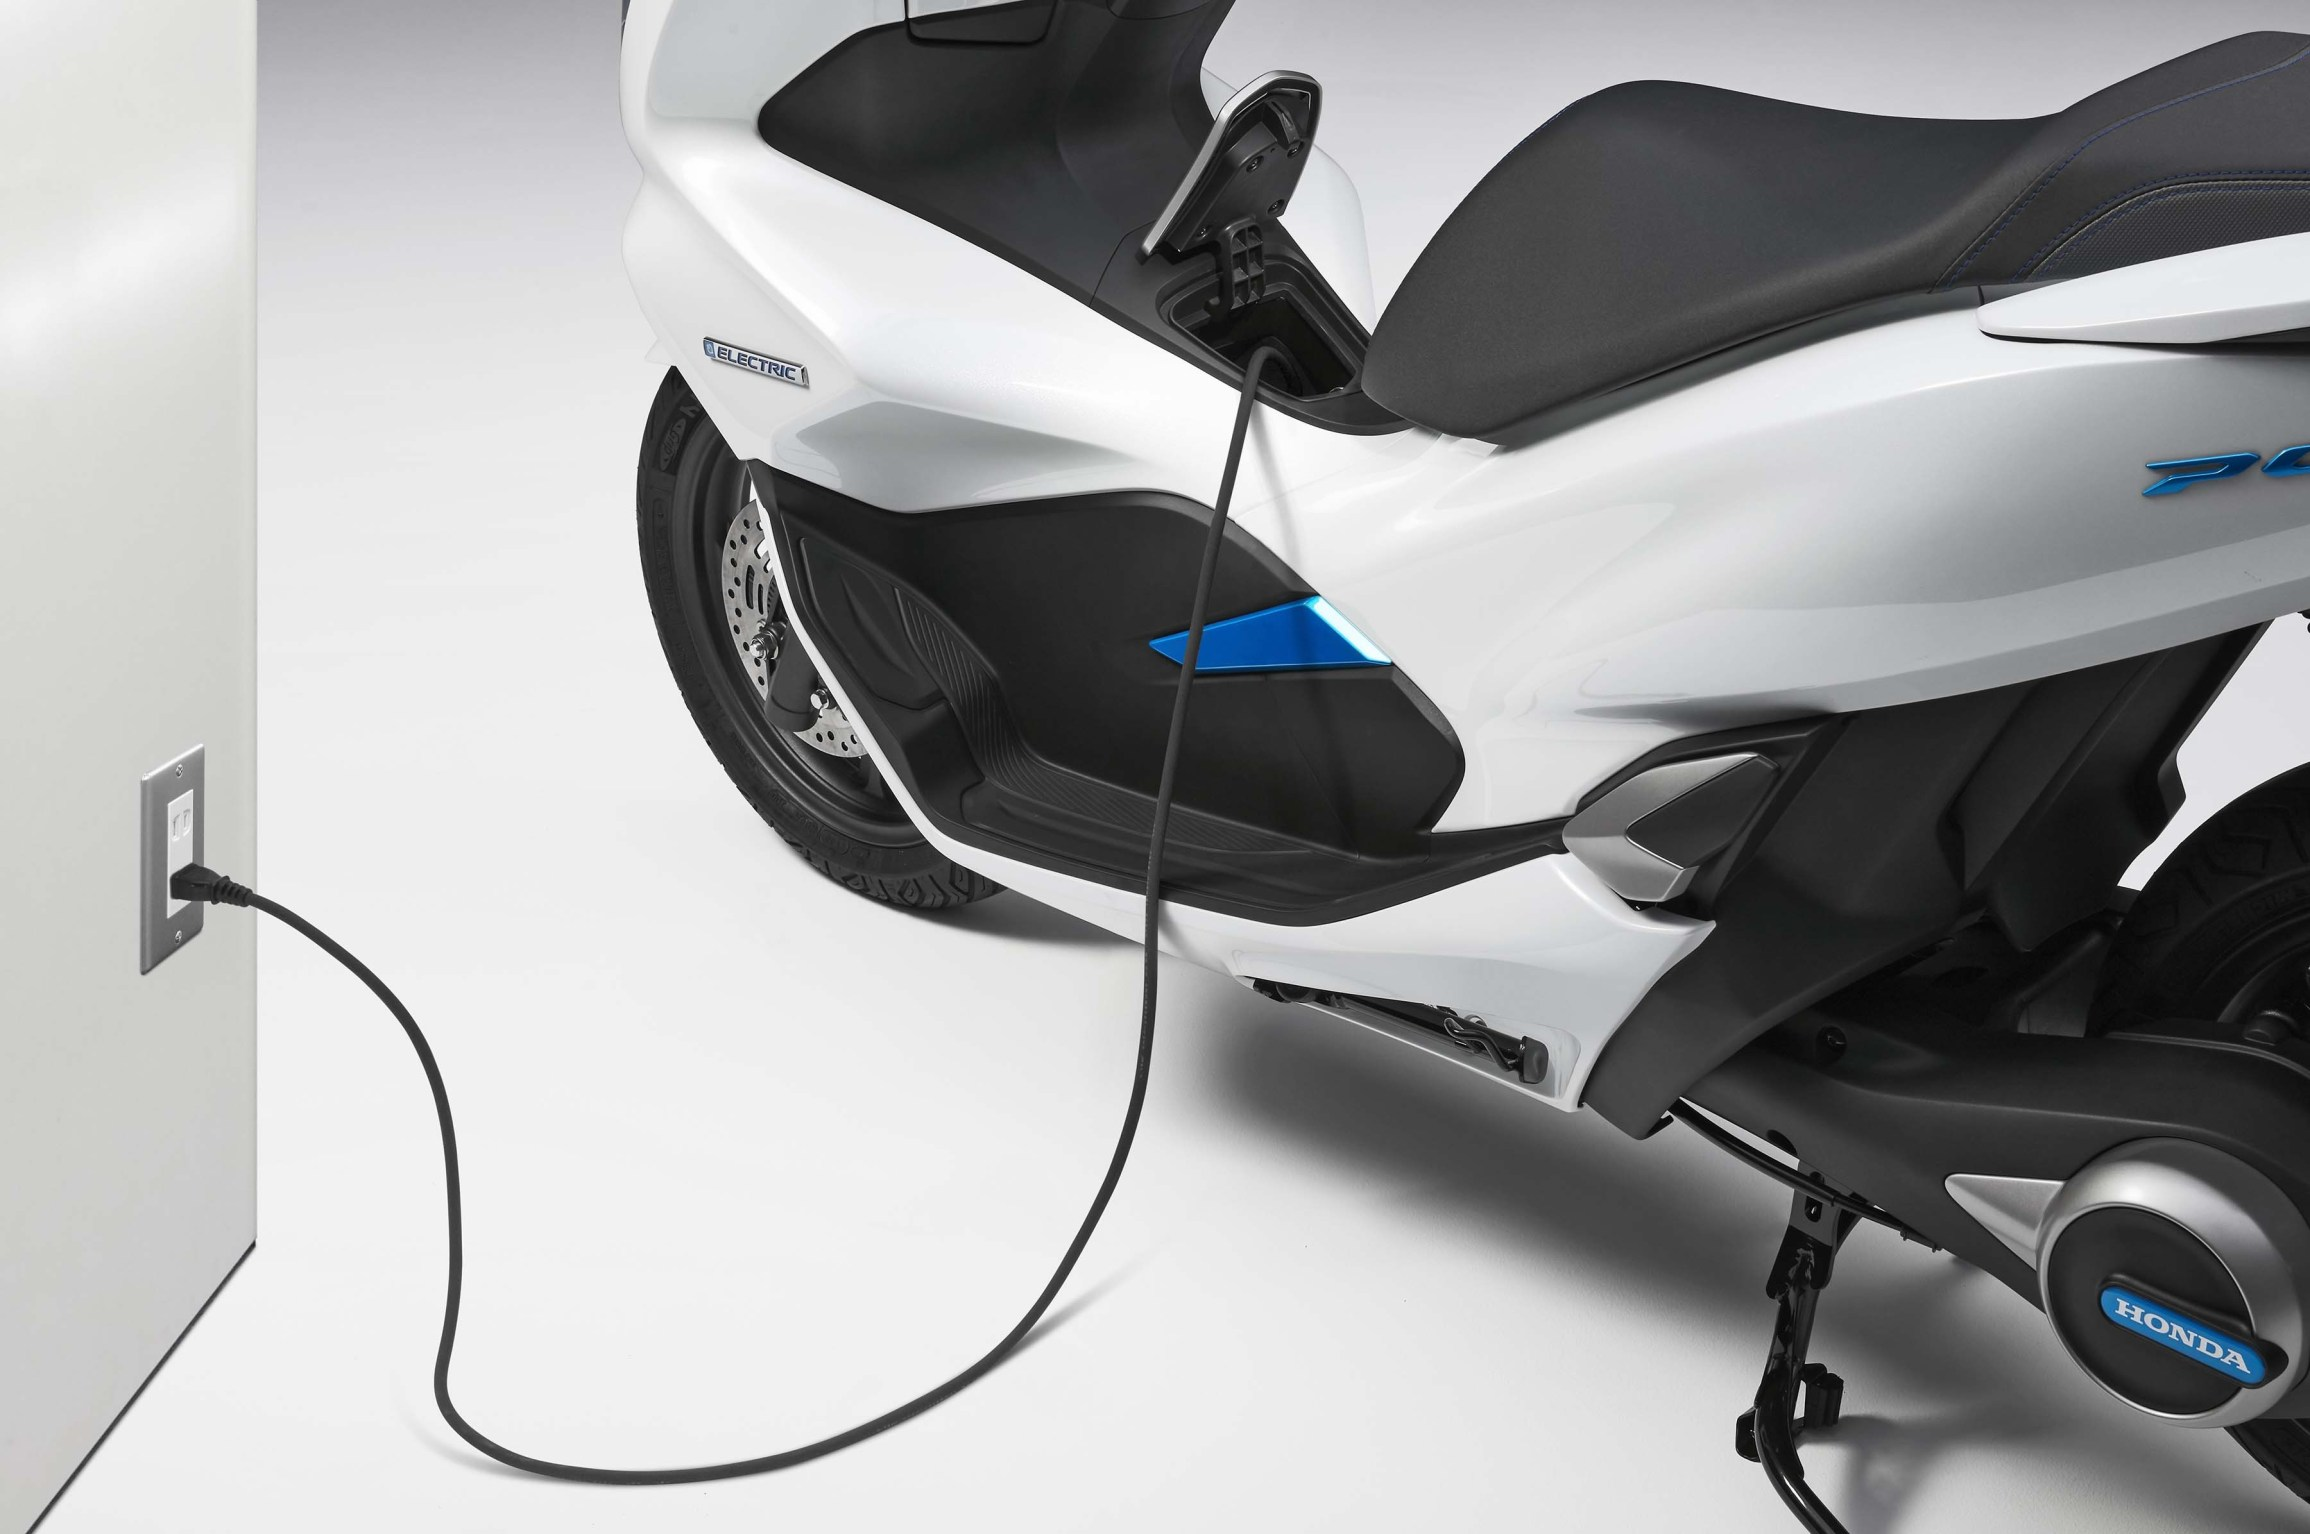 Honda 2-Wheelers Electric Scooter